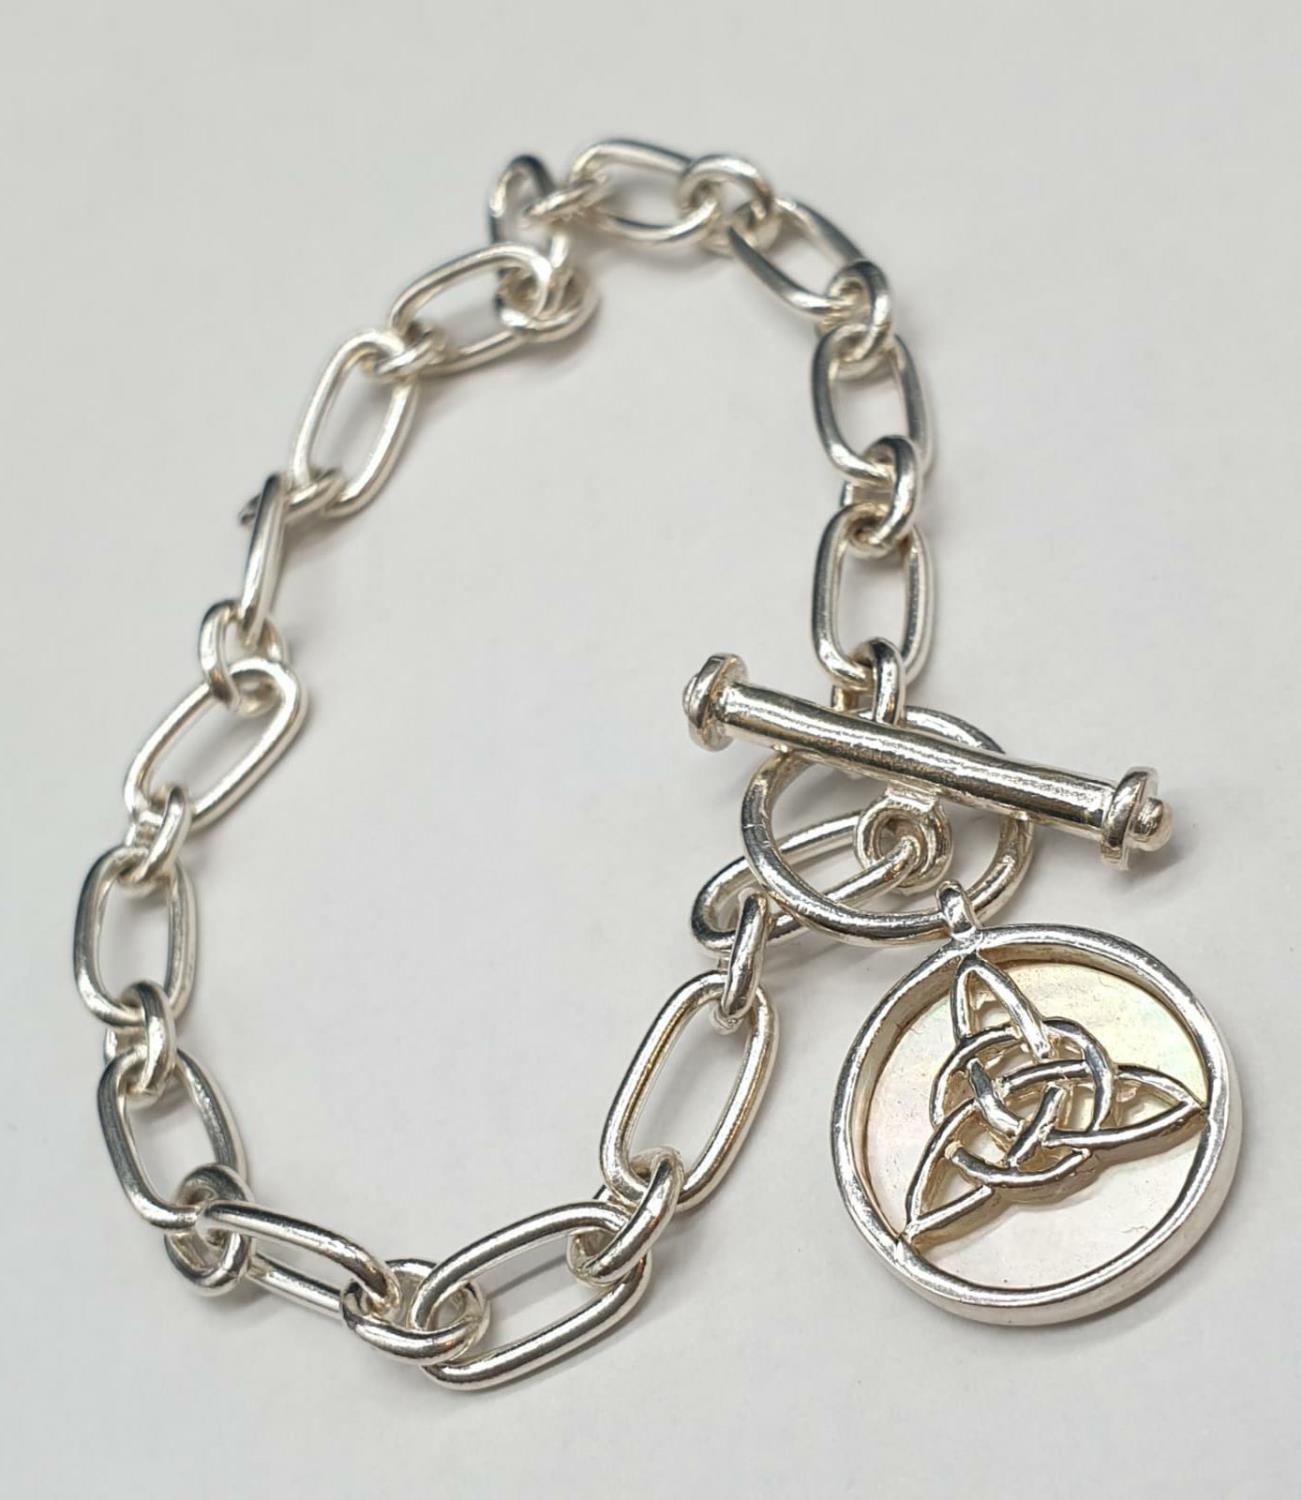 18cm Silver Bracelet with T-Bar Fastener and Mother-of- Pearl Medallion 10.6g